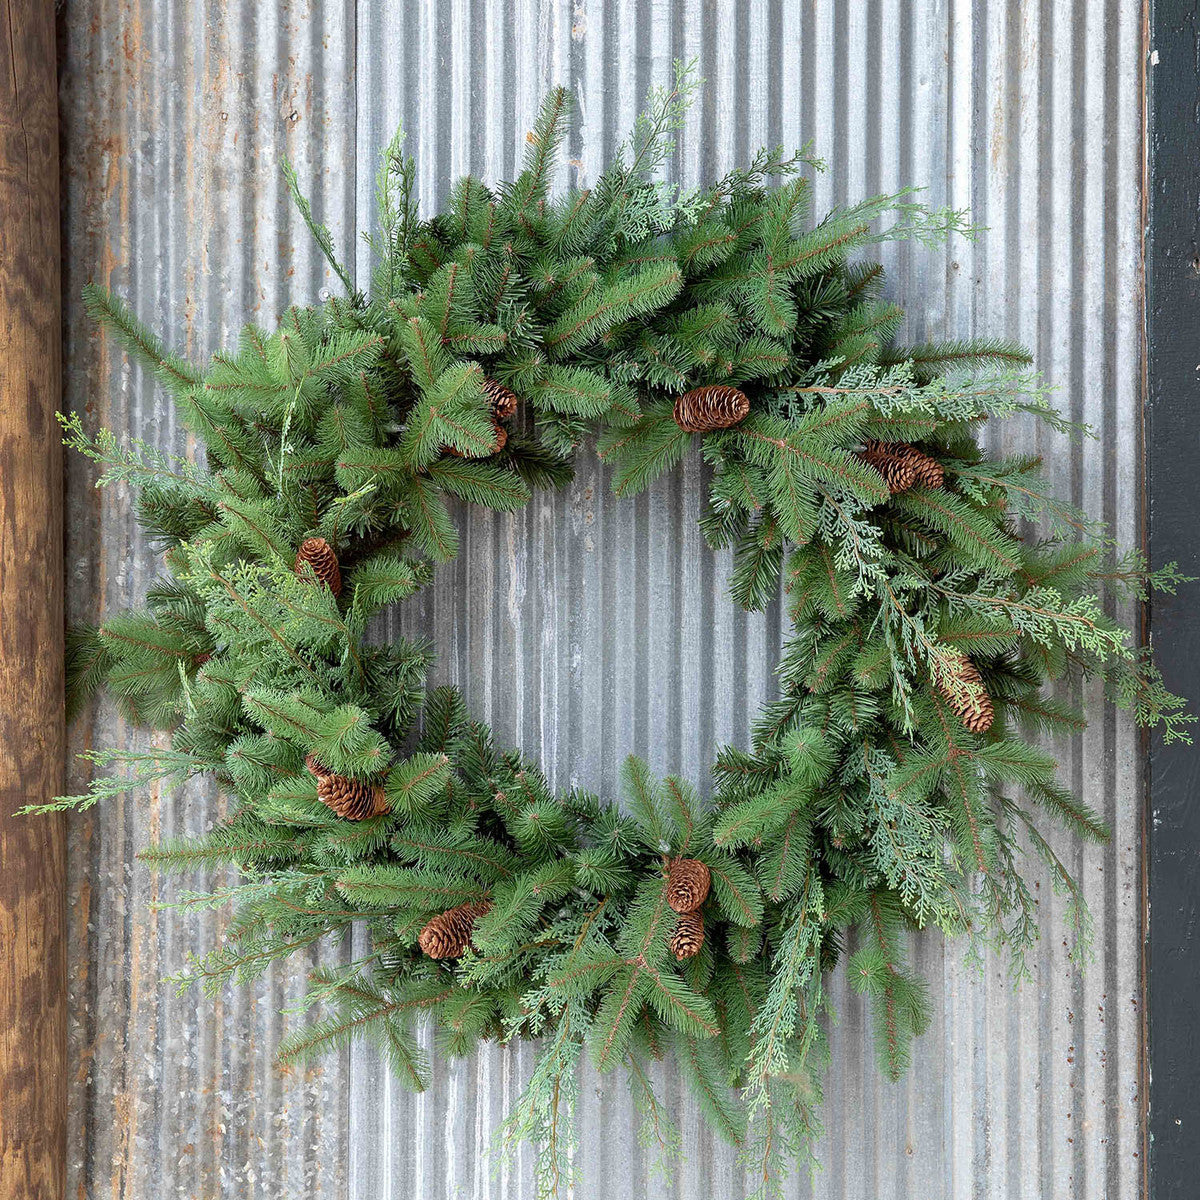 Mixed Evergreen Wreath with LED